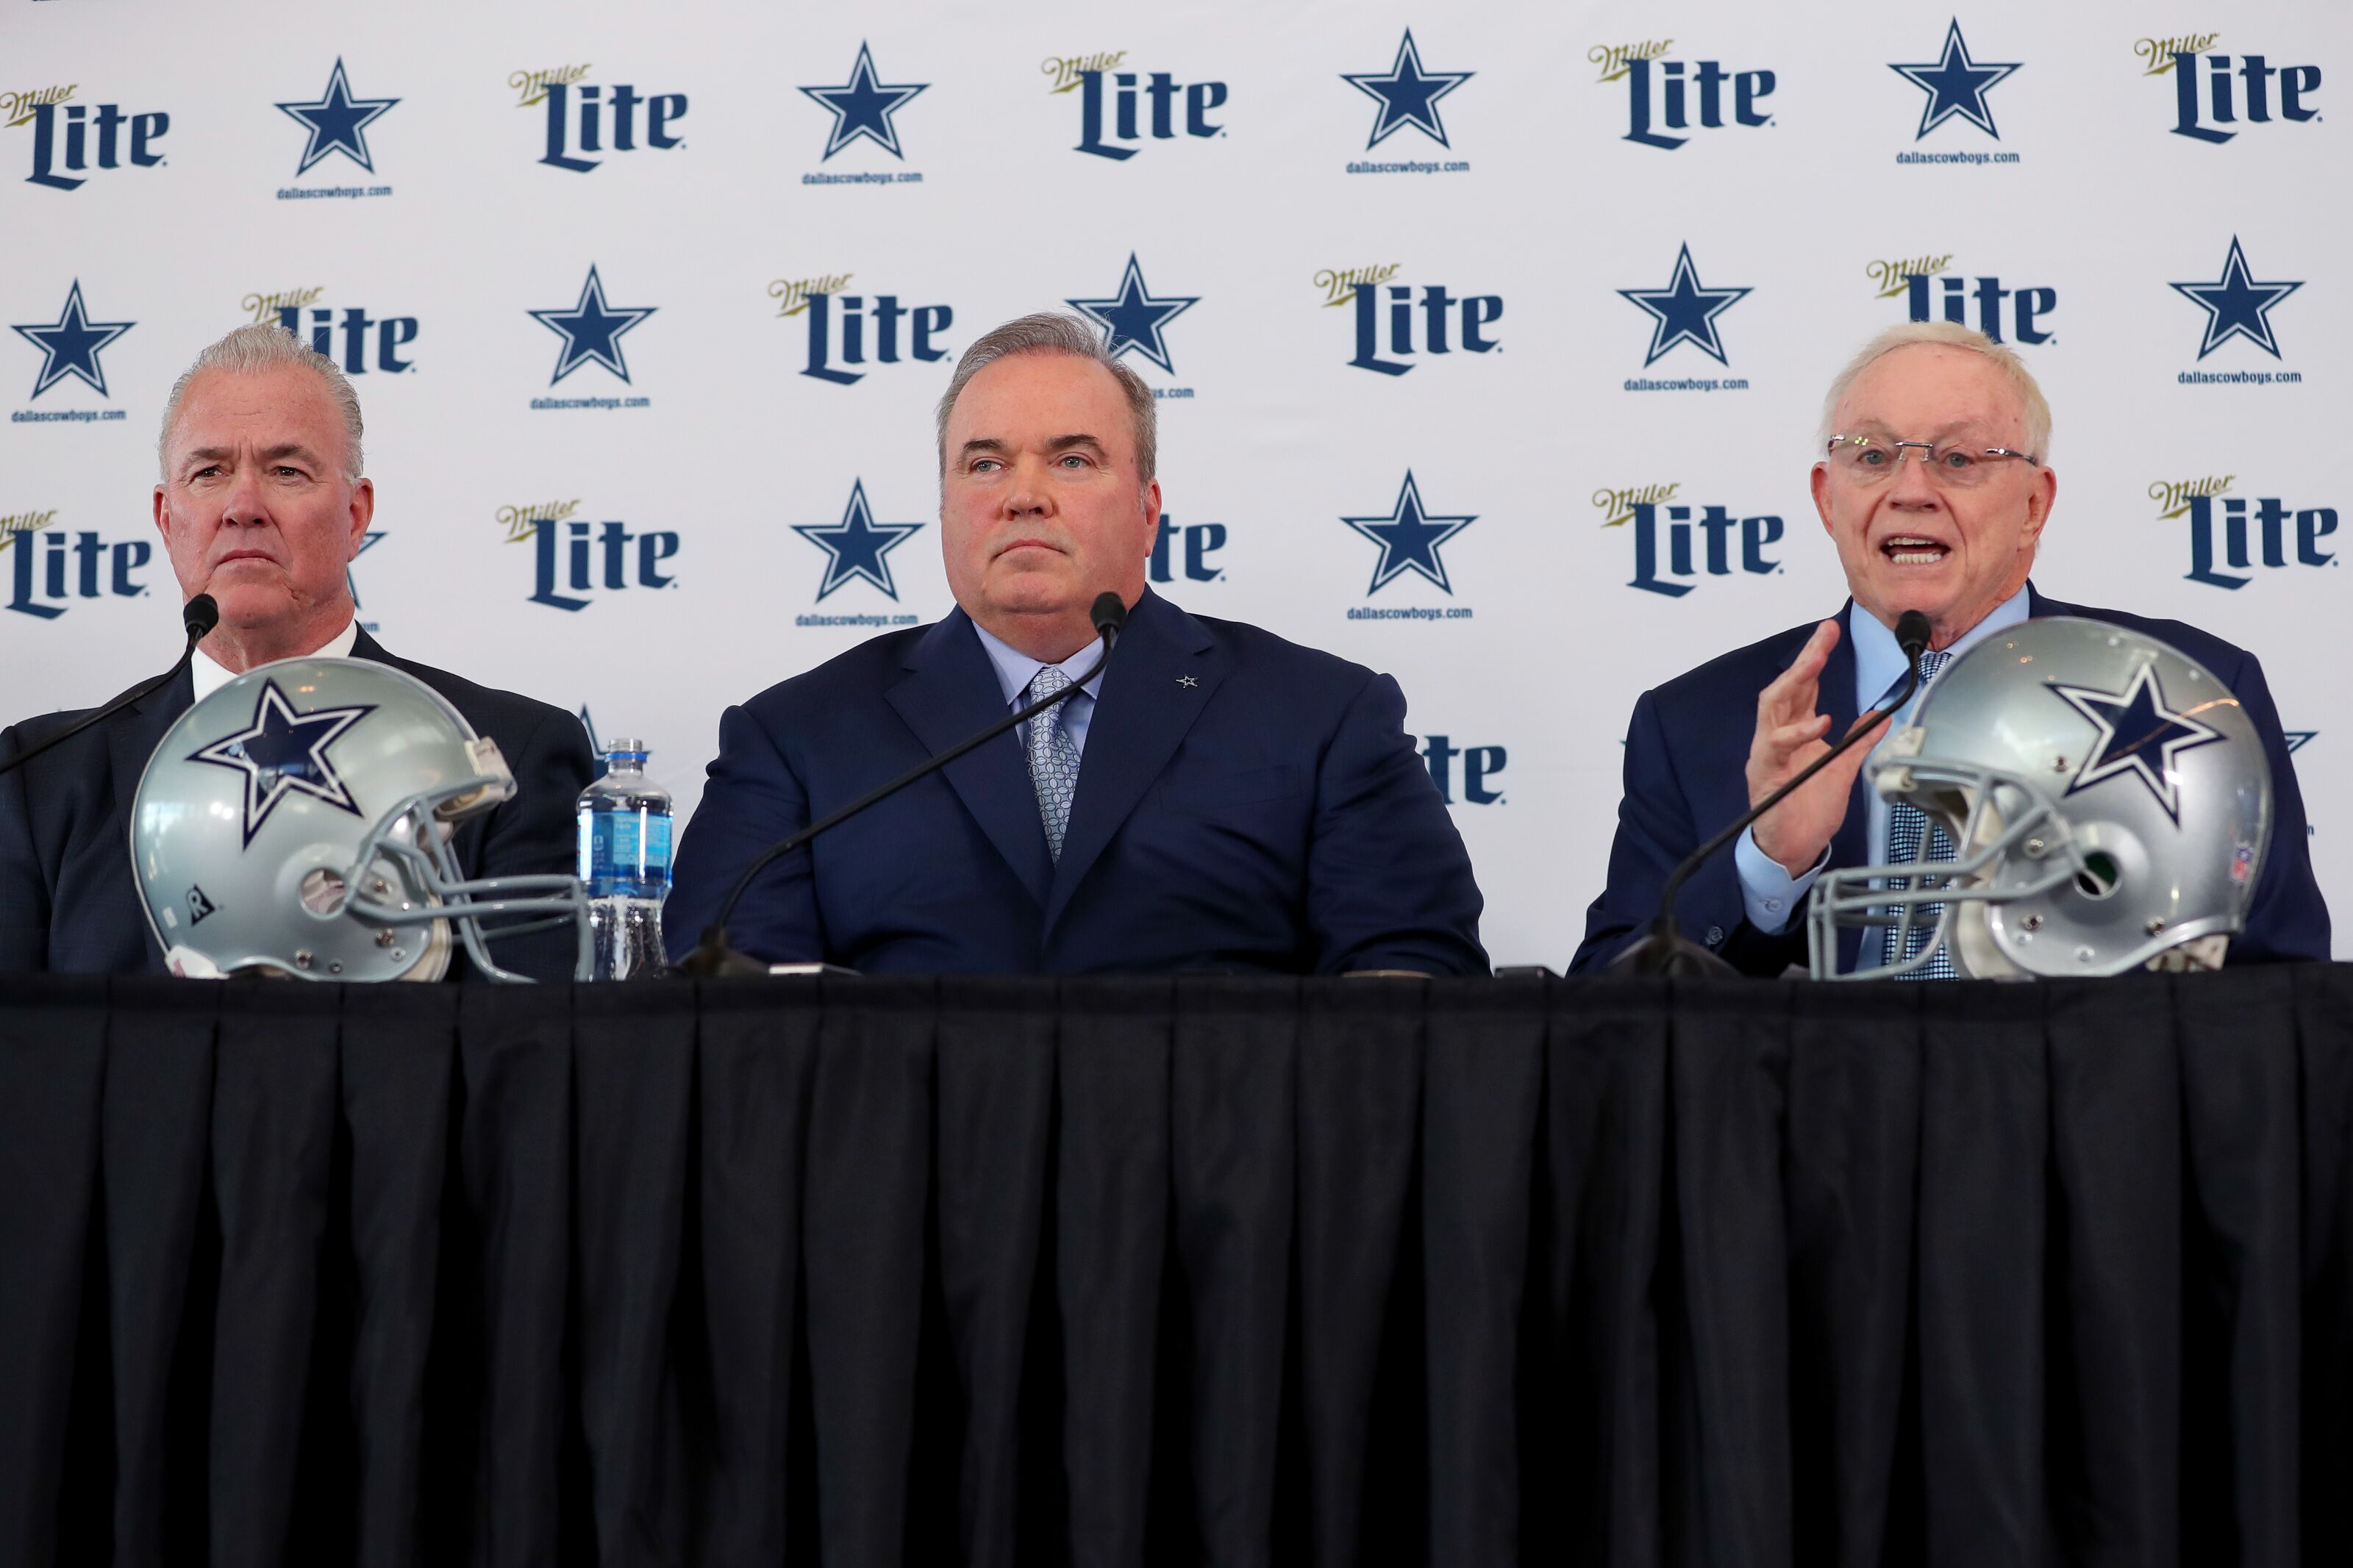 Dallas Cowboys: Scheme takes back seat to acquiring great players